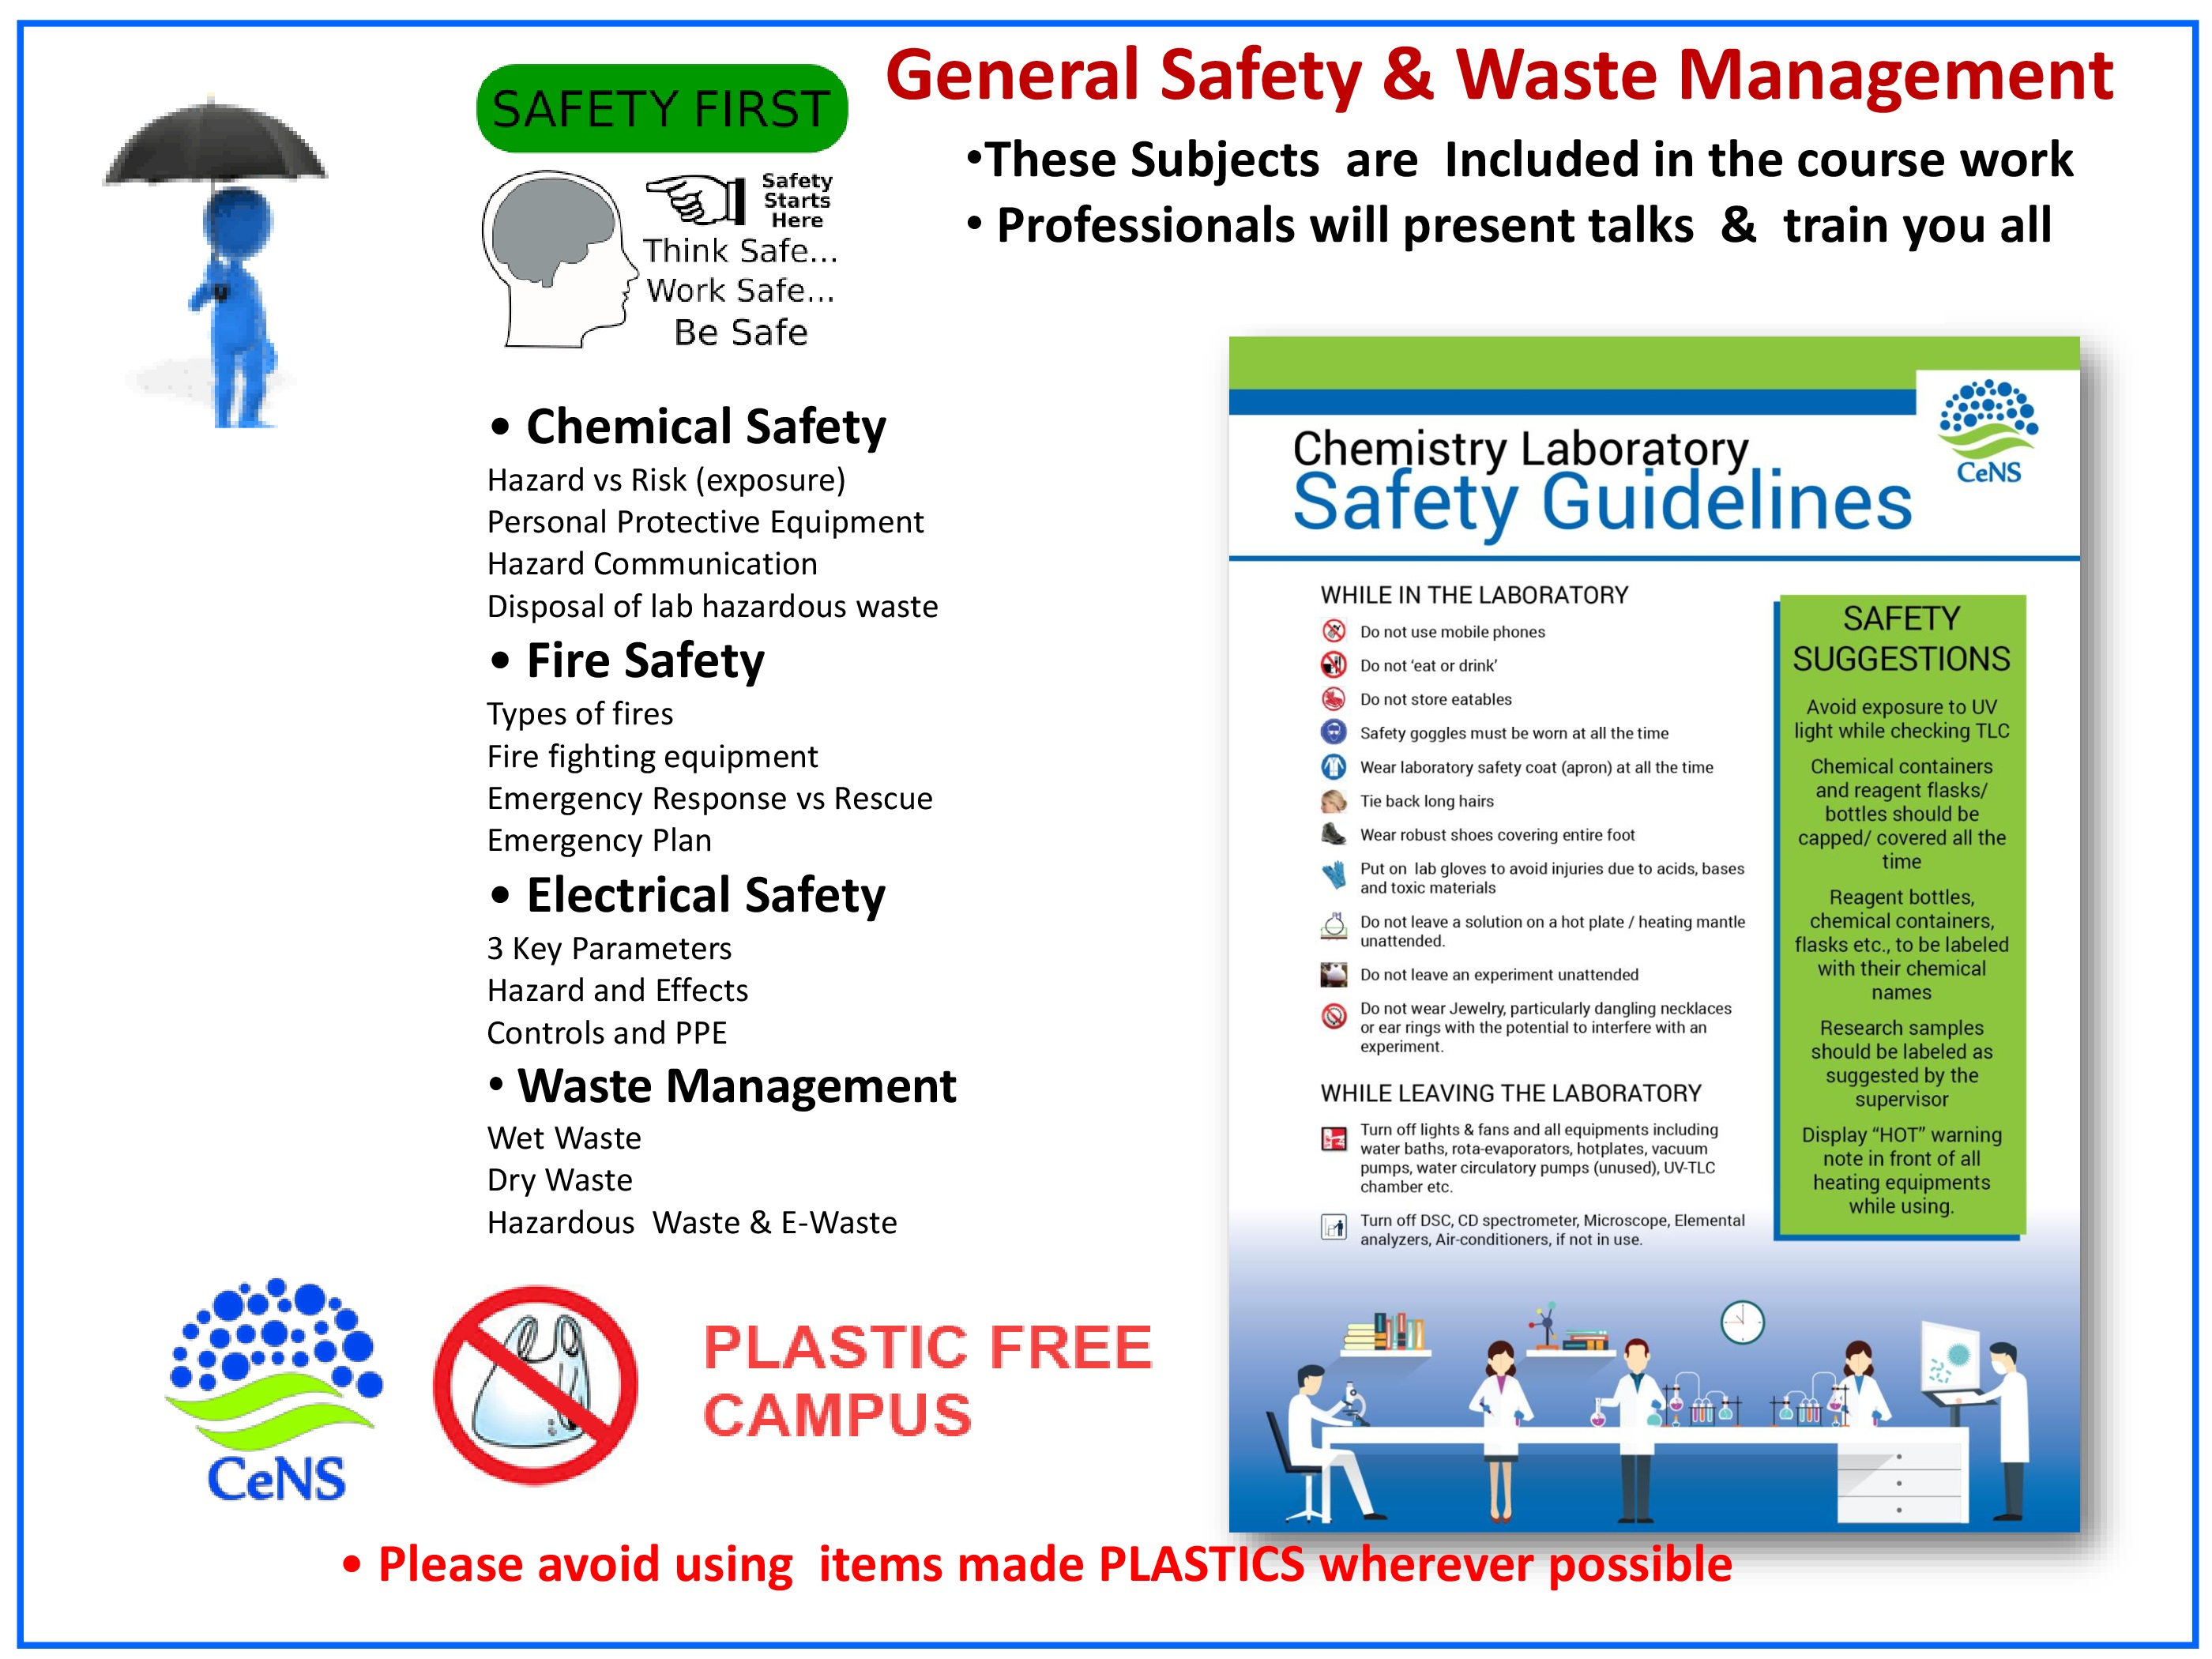 General Safety and Waste Management